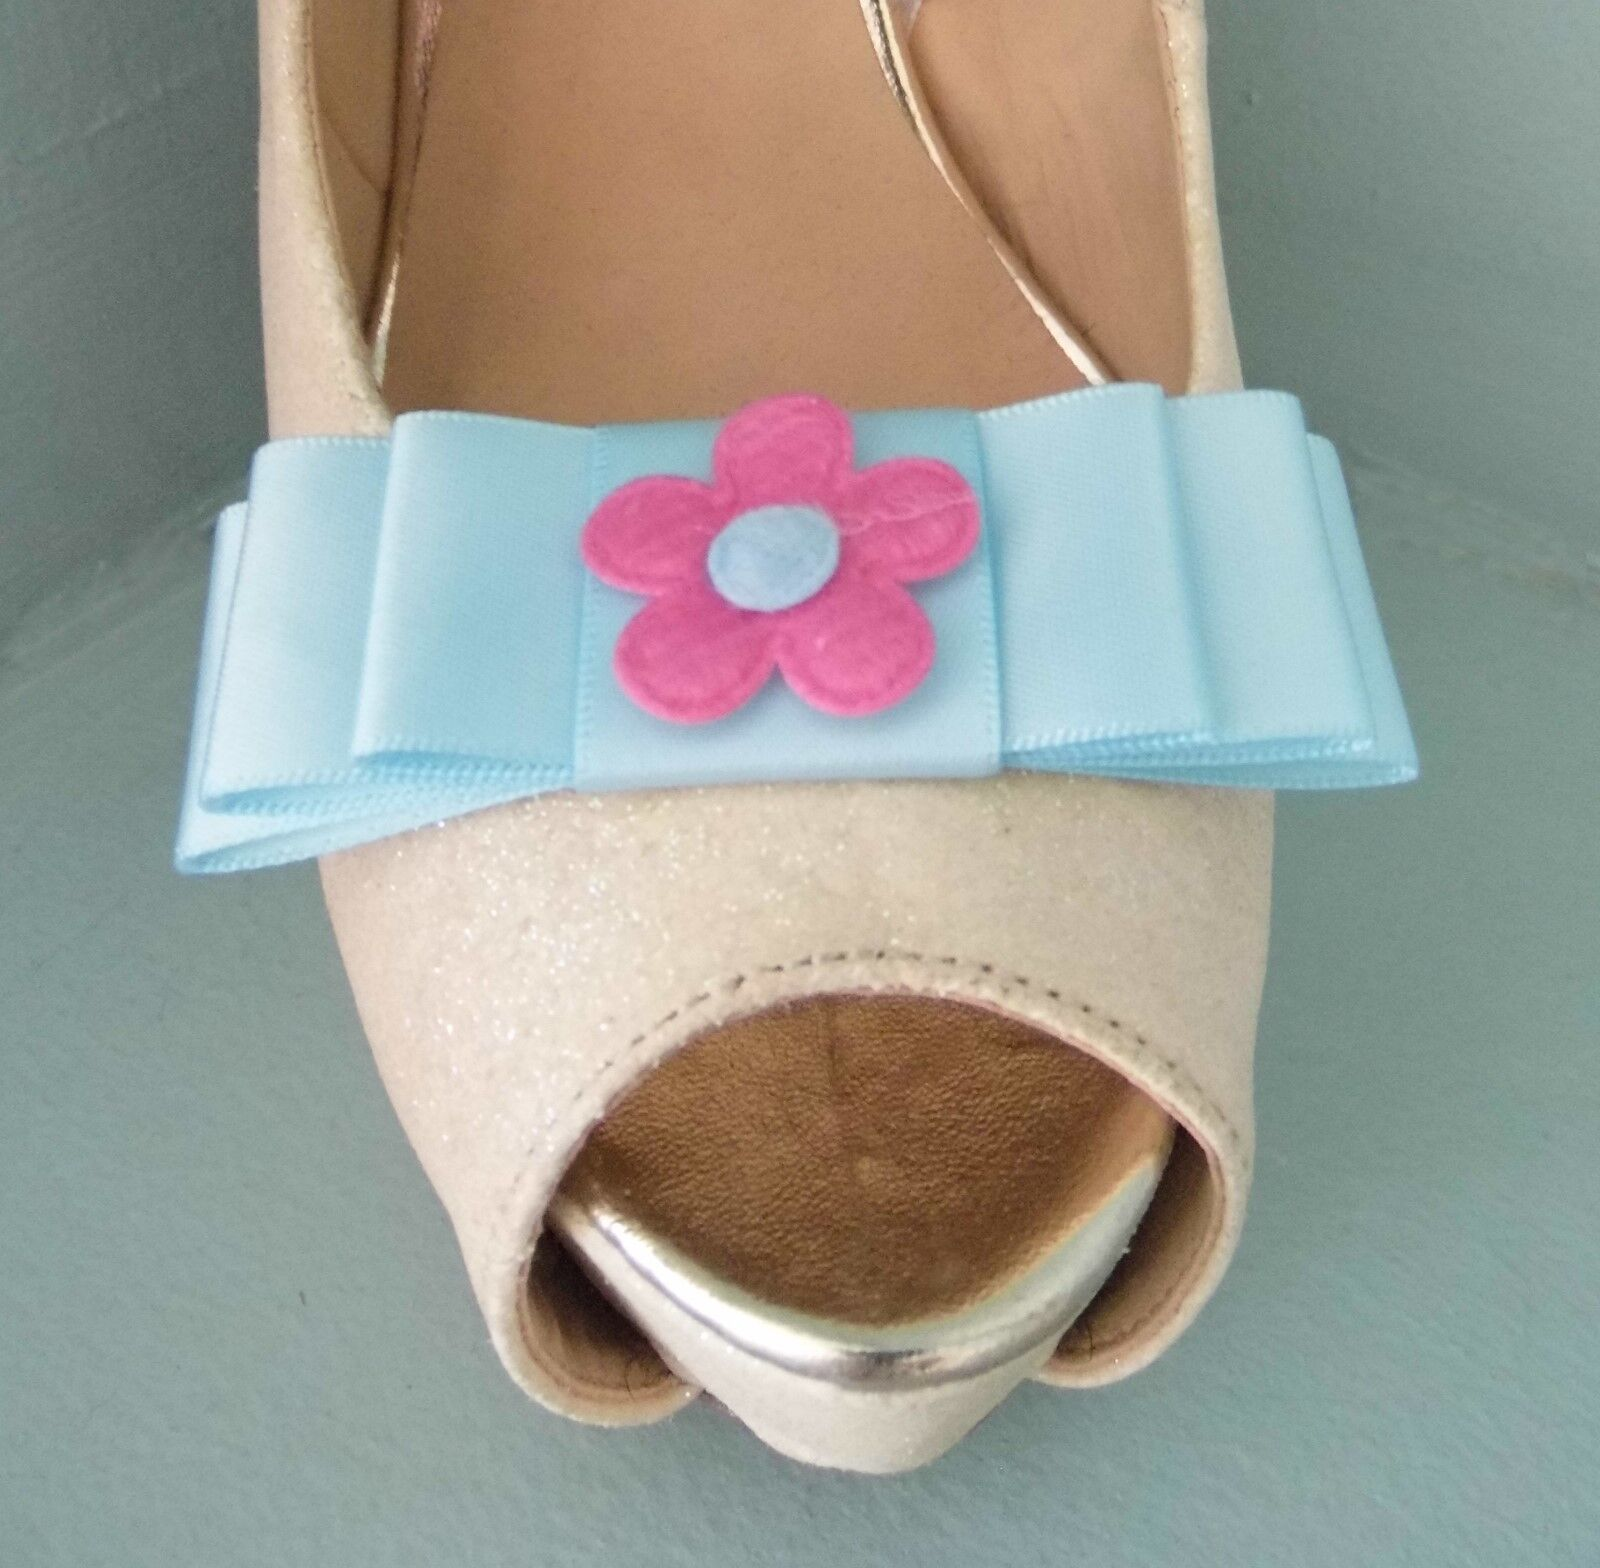 2 Baby Blue Bow Clips for Shoes with Pink Felt Flower Centre